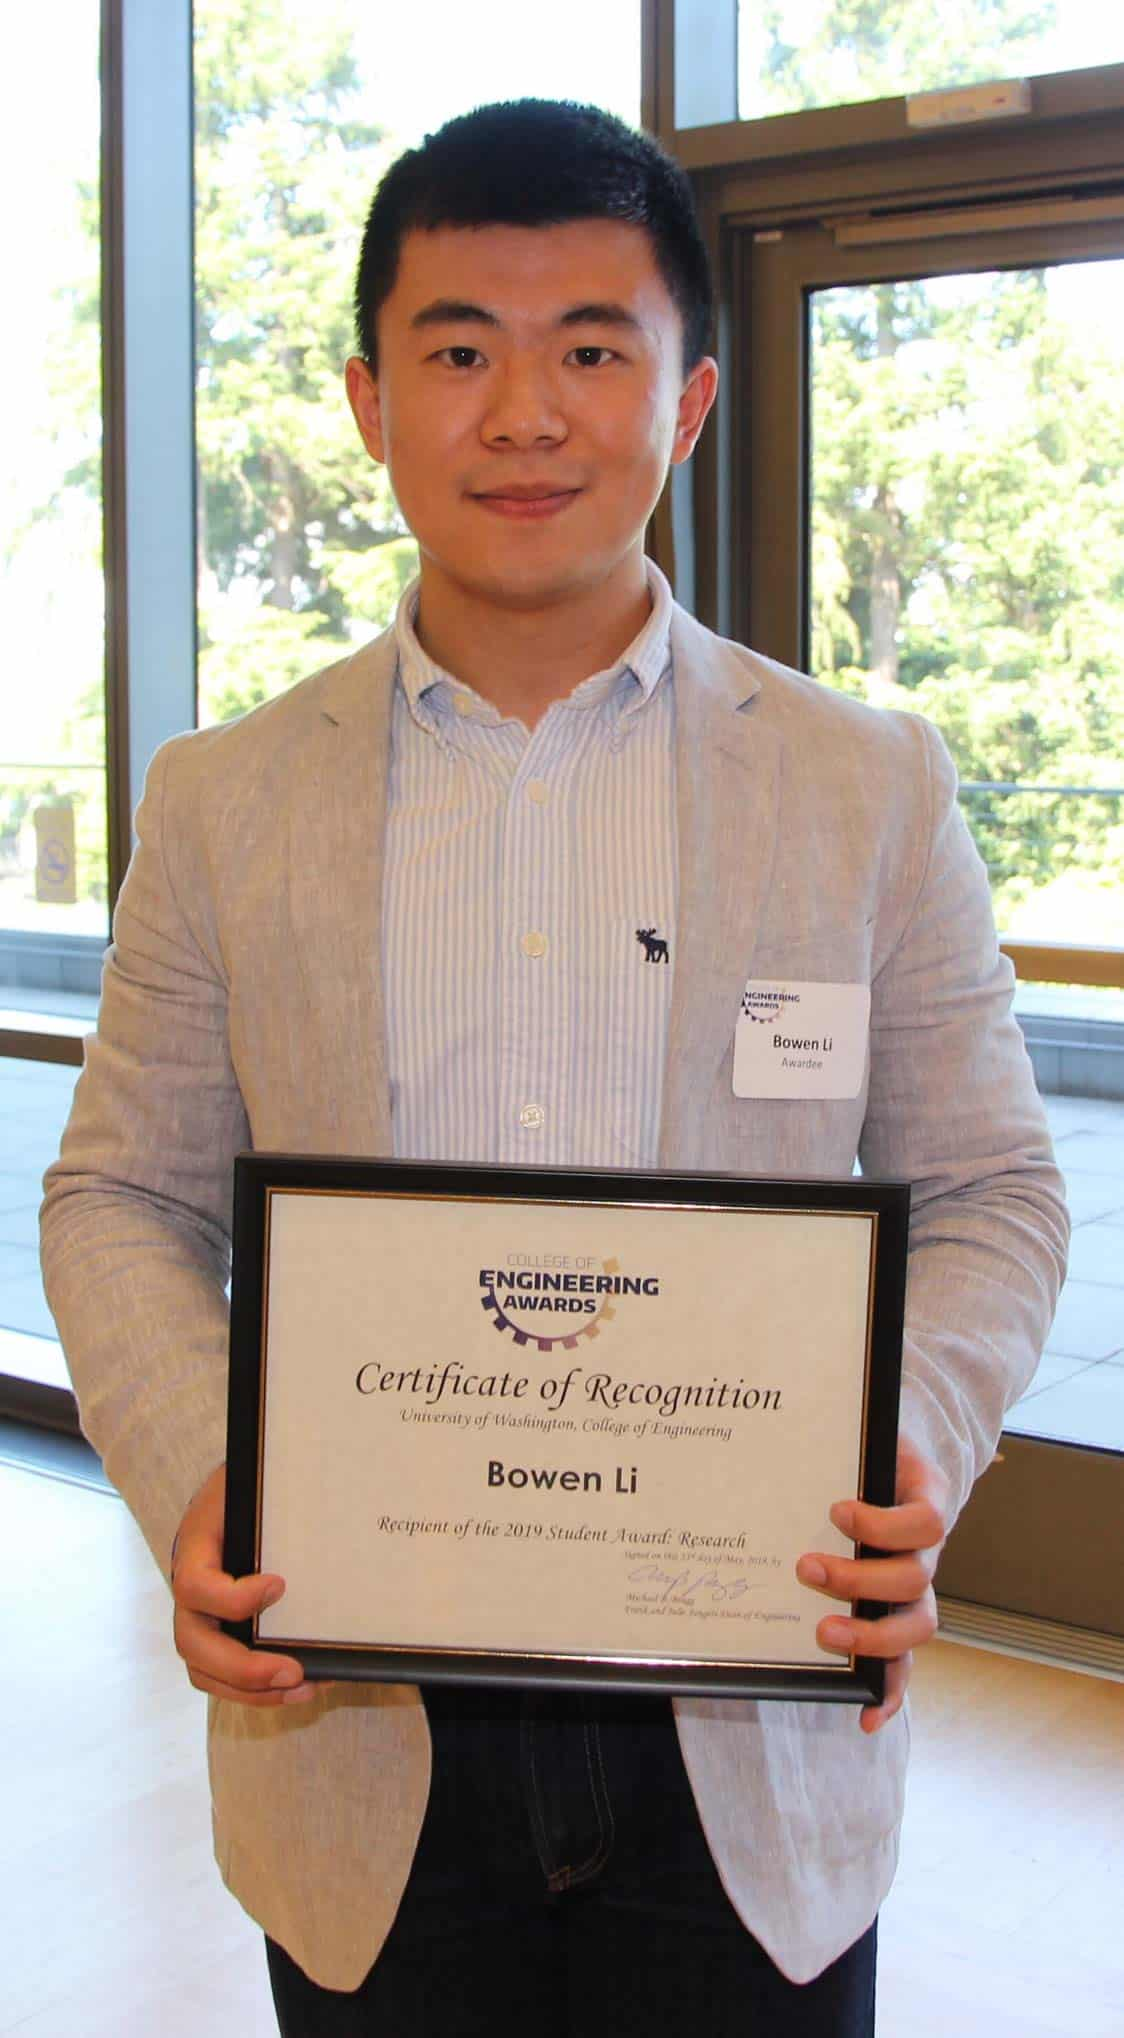 BioE PhD student Bowen Li with award by Greg DeBow